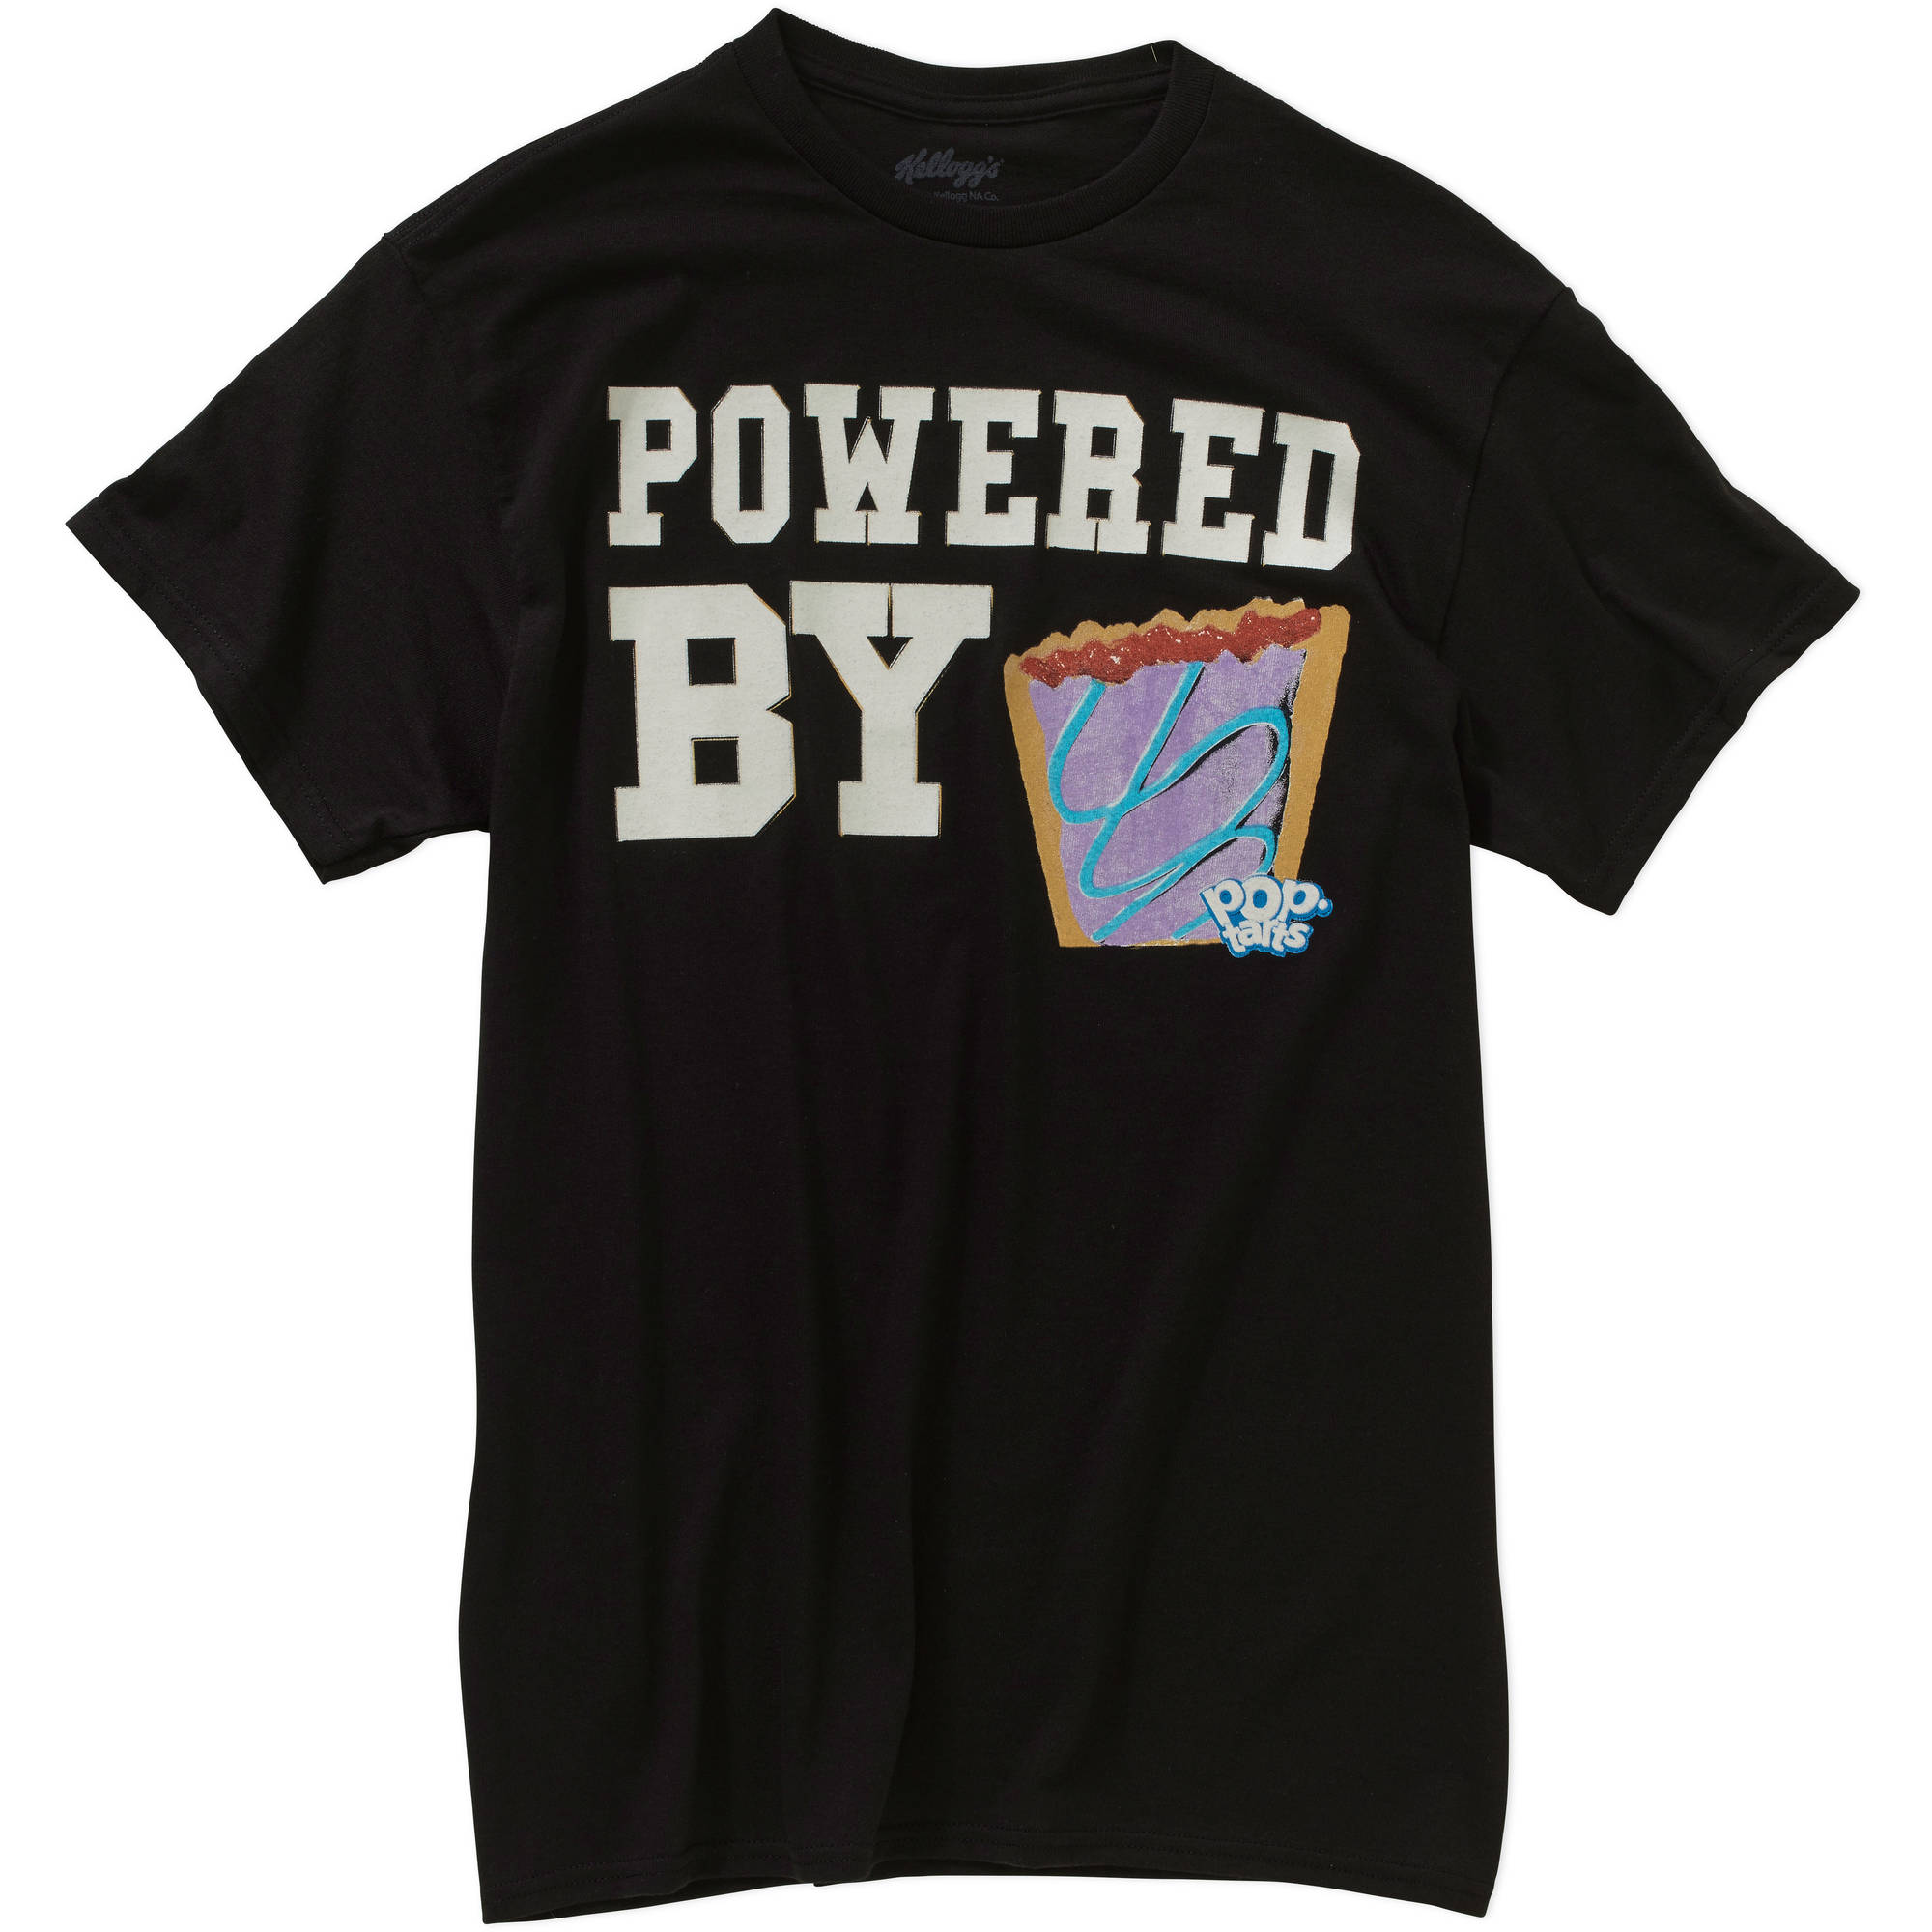 Kellogg's Powered by Pop Tarts Mens Graphic Tee